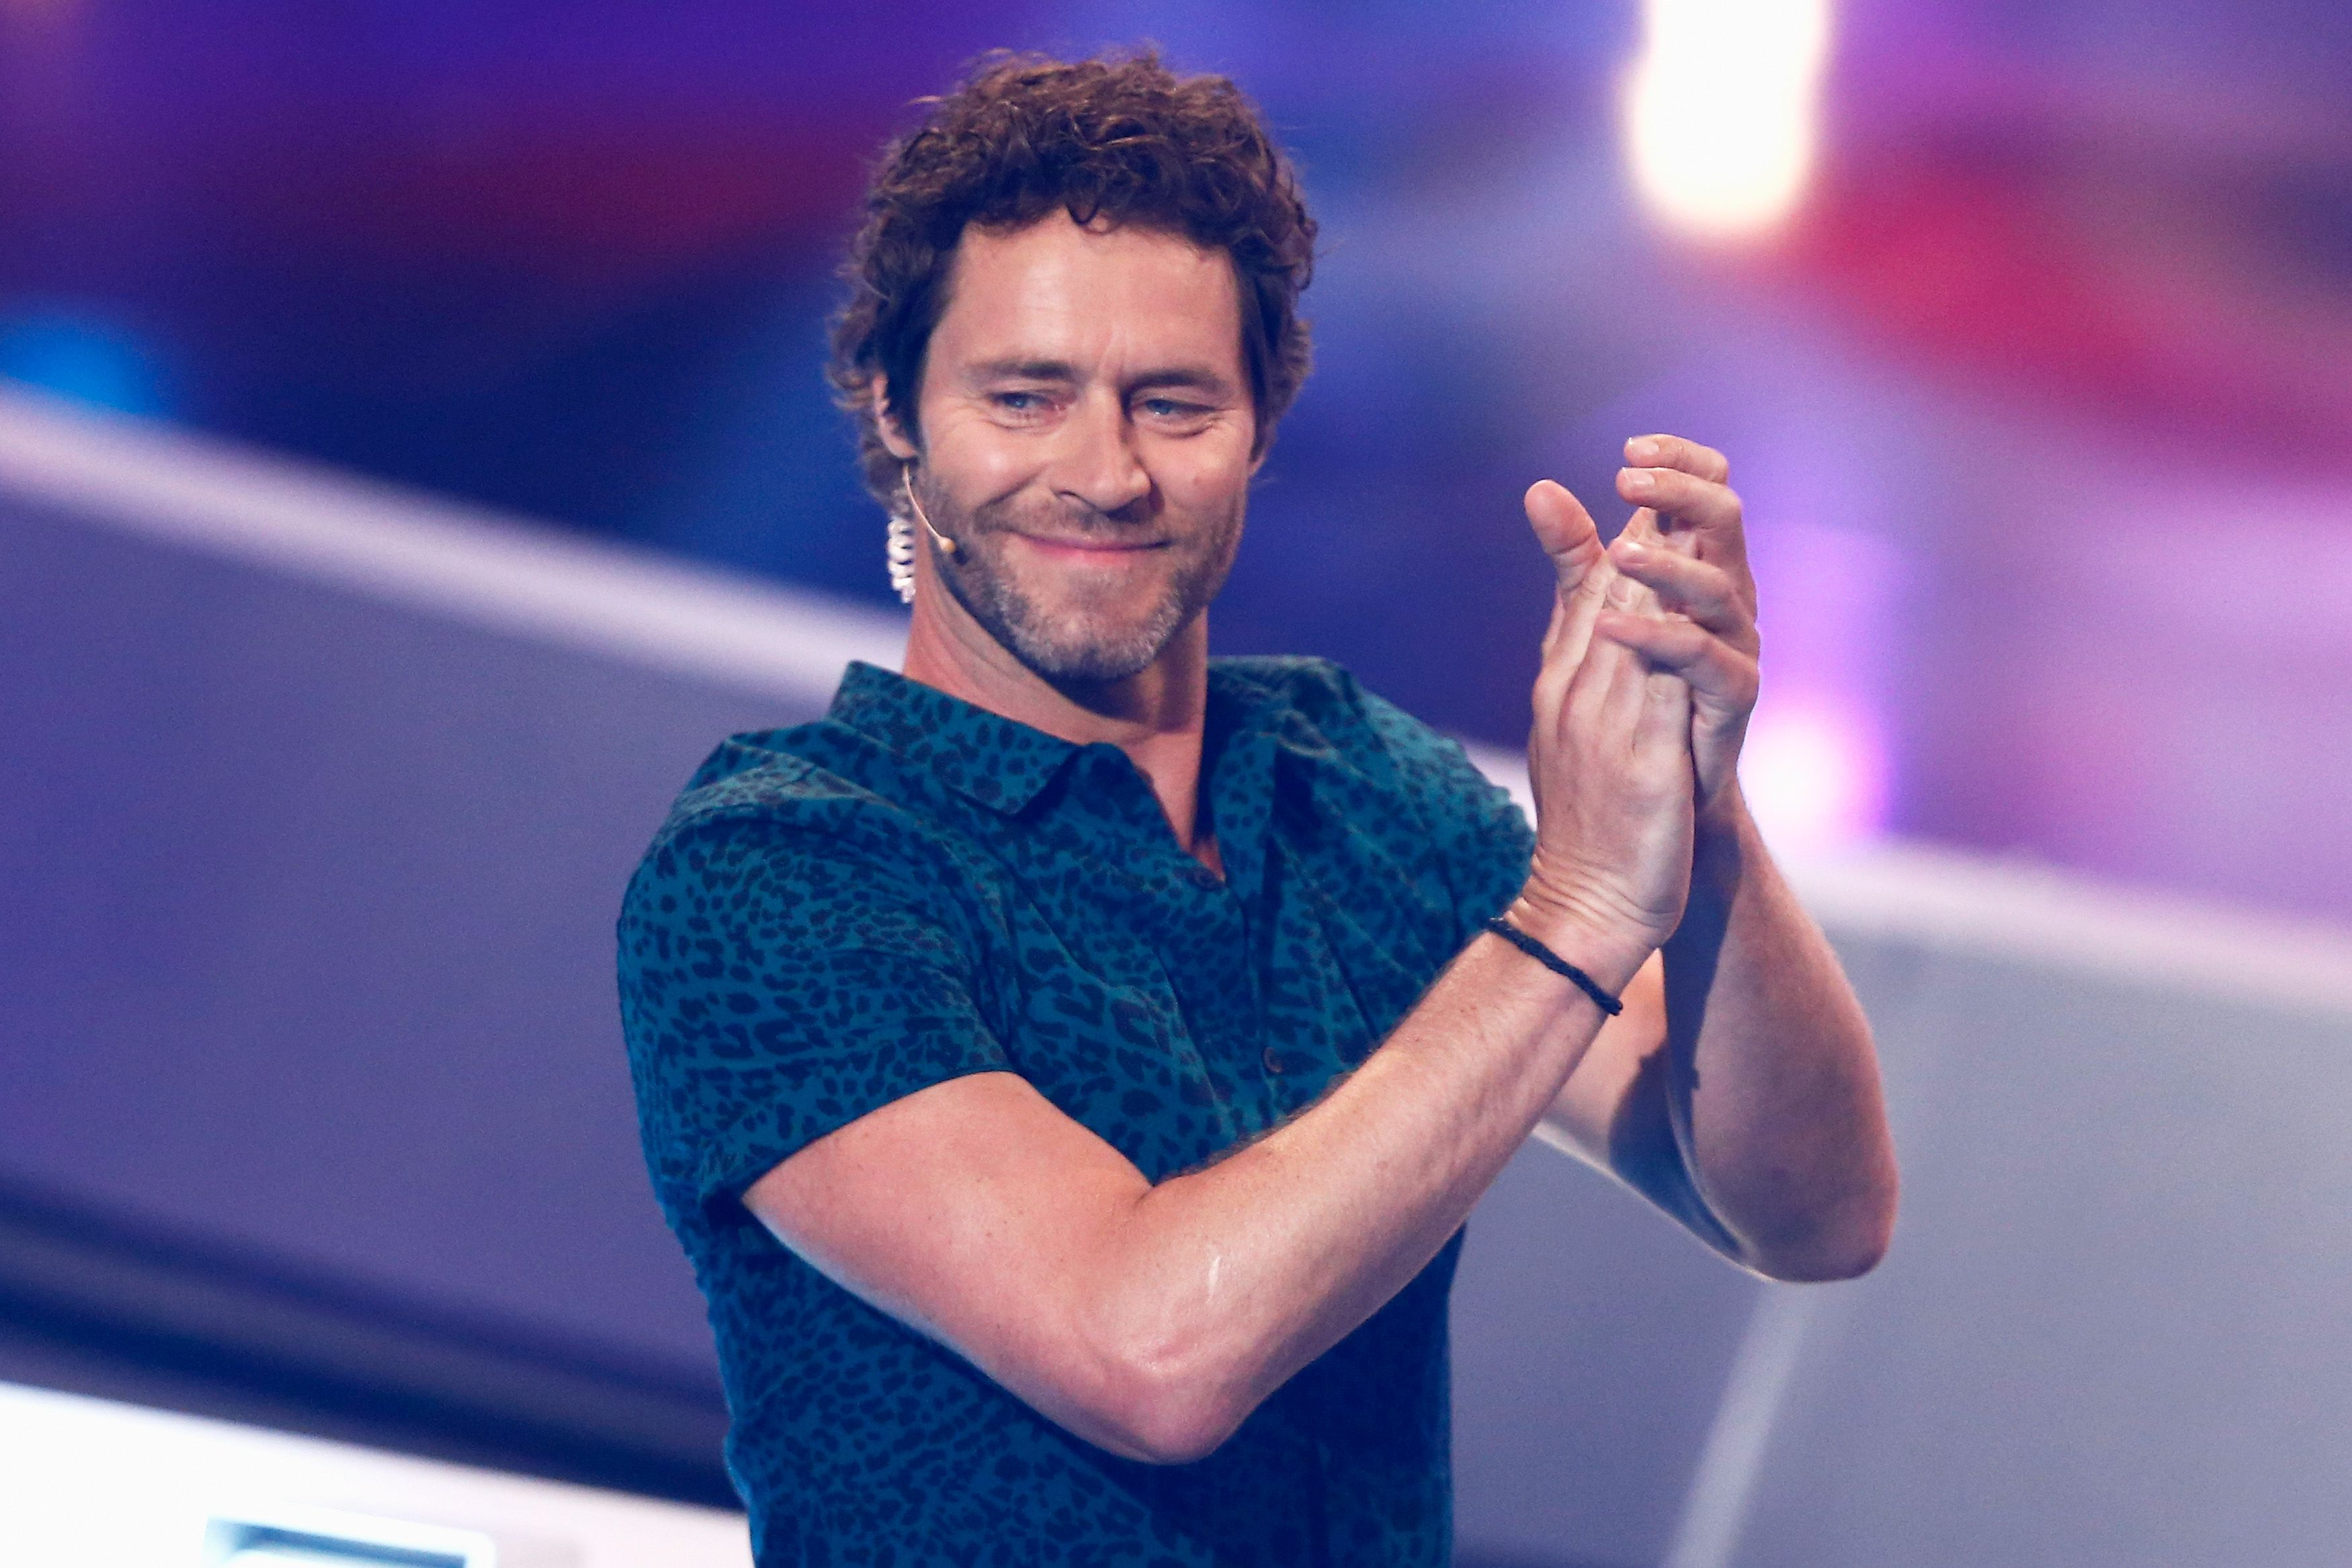 Howard Donald has had enough of Gary Barlow getting all the credit for Take That's musical